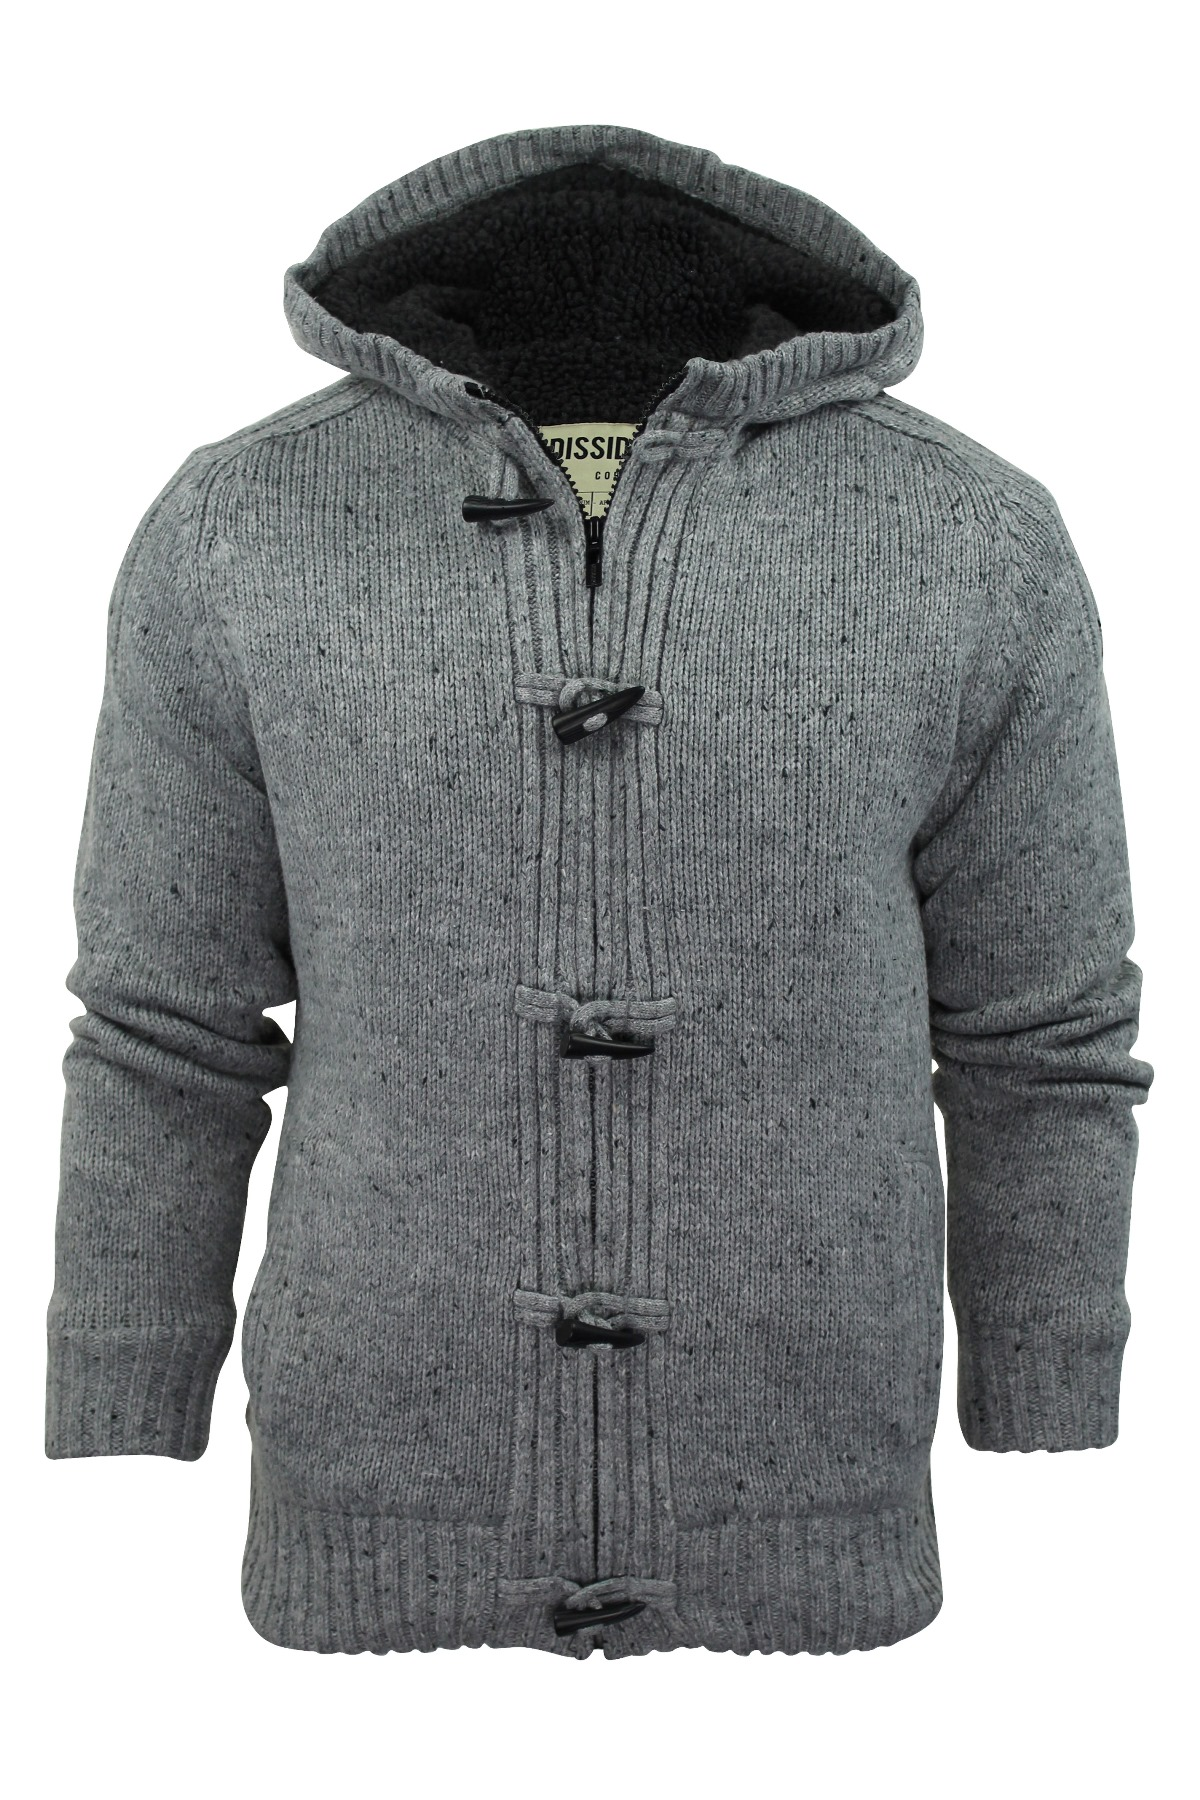 Mens Jumper Cardigan Dissident Hoodie 'Hopkins' Nep Warm Sherpa ...